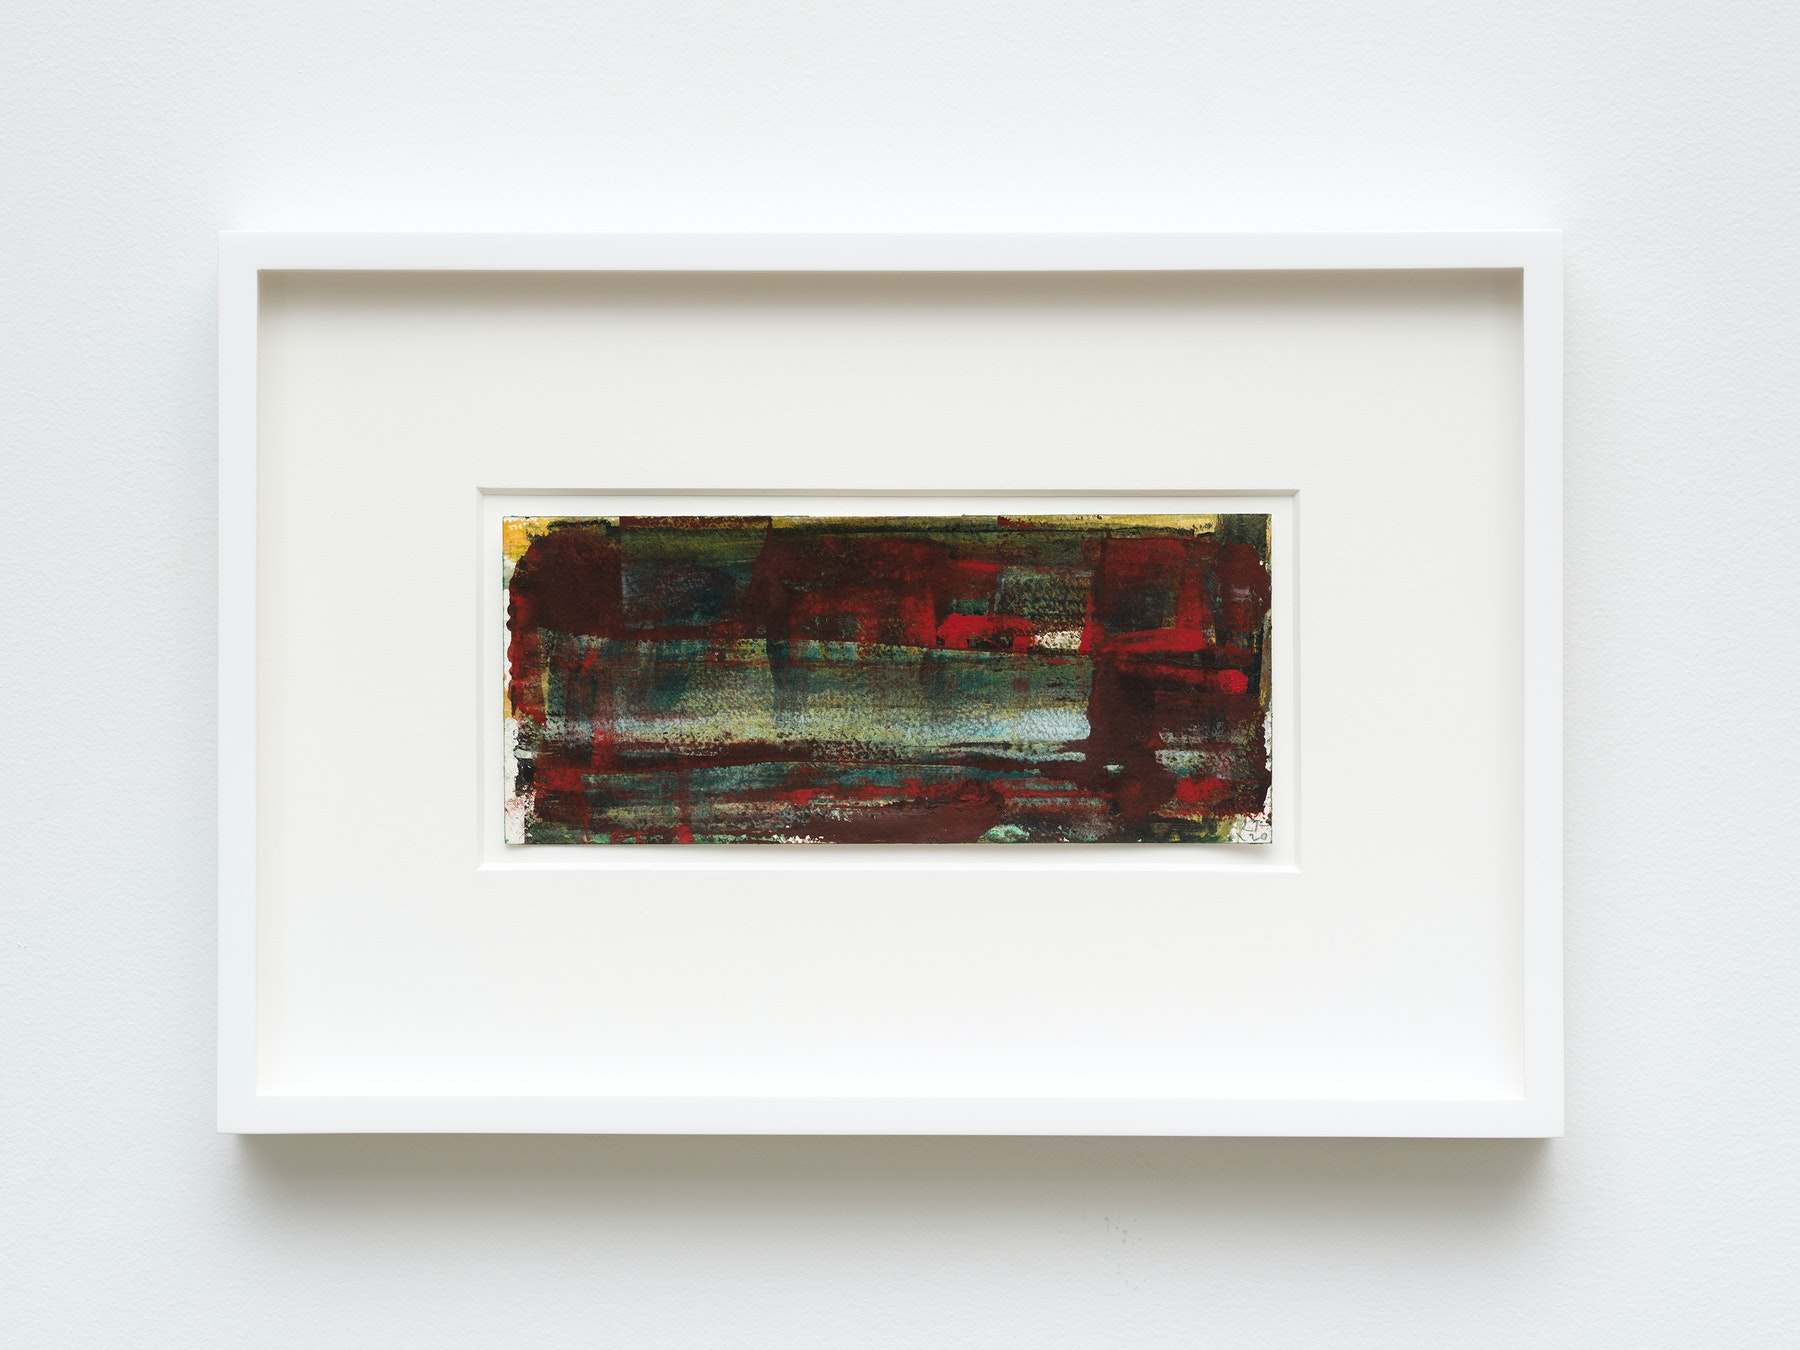 """Louise Fishman """"UNTITLED,"""" 2020 Watercolor on paper 4 ¹⁄₄"""" x 9 ¹⁄₂"""" [HxW] (10.79 x 24.13 cm) unframed, 11 ¹⁄₄"""" x 16 ³⁄₄"""" x 1 ¹⁄₂"""" [HxWxD] (28.57 x 42.54 x 3.81 cm) framed Inventory #FIS162 Courtesy of the artist and Vielmetter Los Angeles Photo credit: Jeff Mclane"""